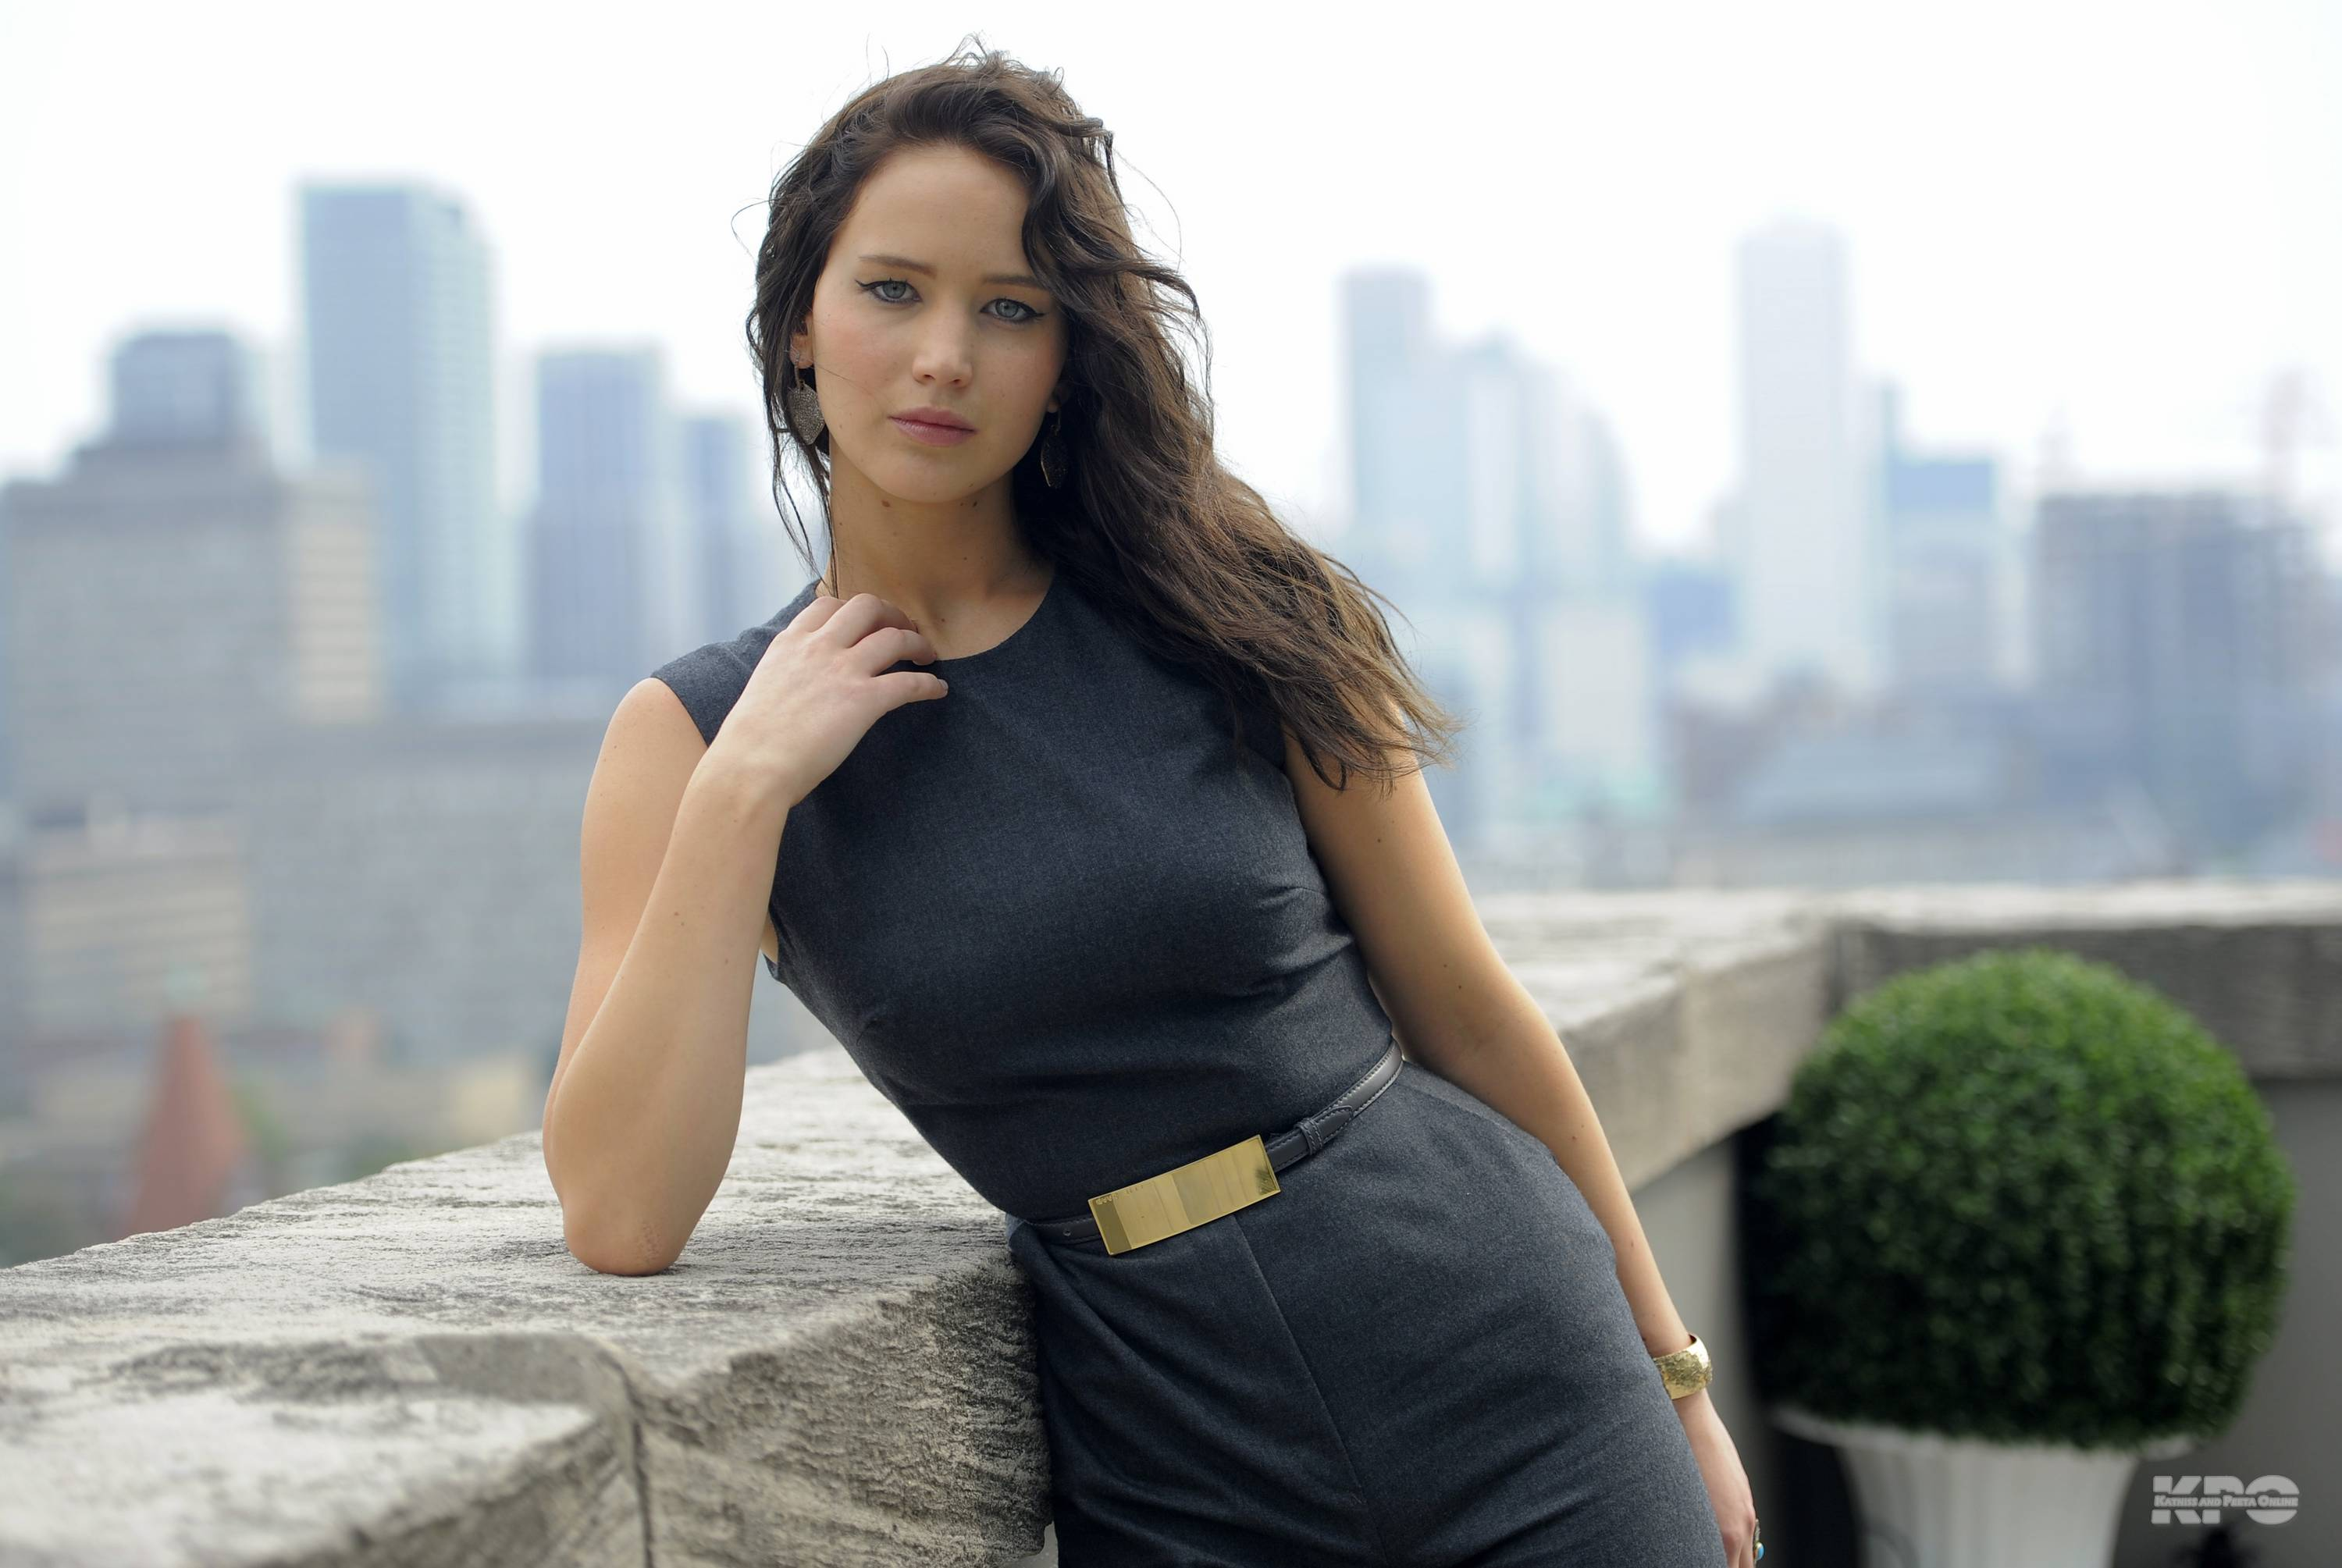 Toronto-International-Film-Festival-Silver-Linings-Playbook-September-7th-jennifer-lawrence-32105036-3000-2009